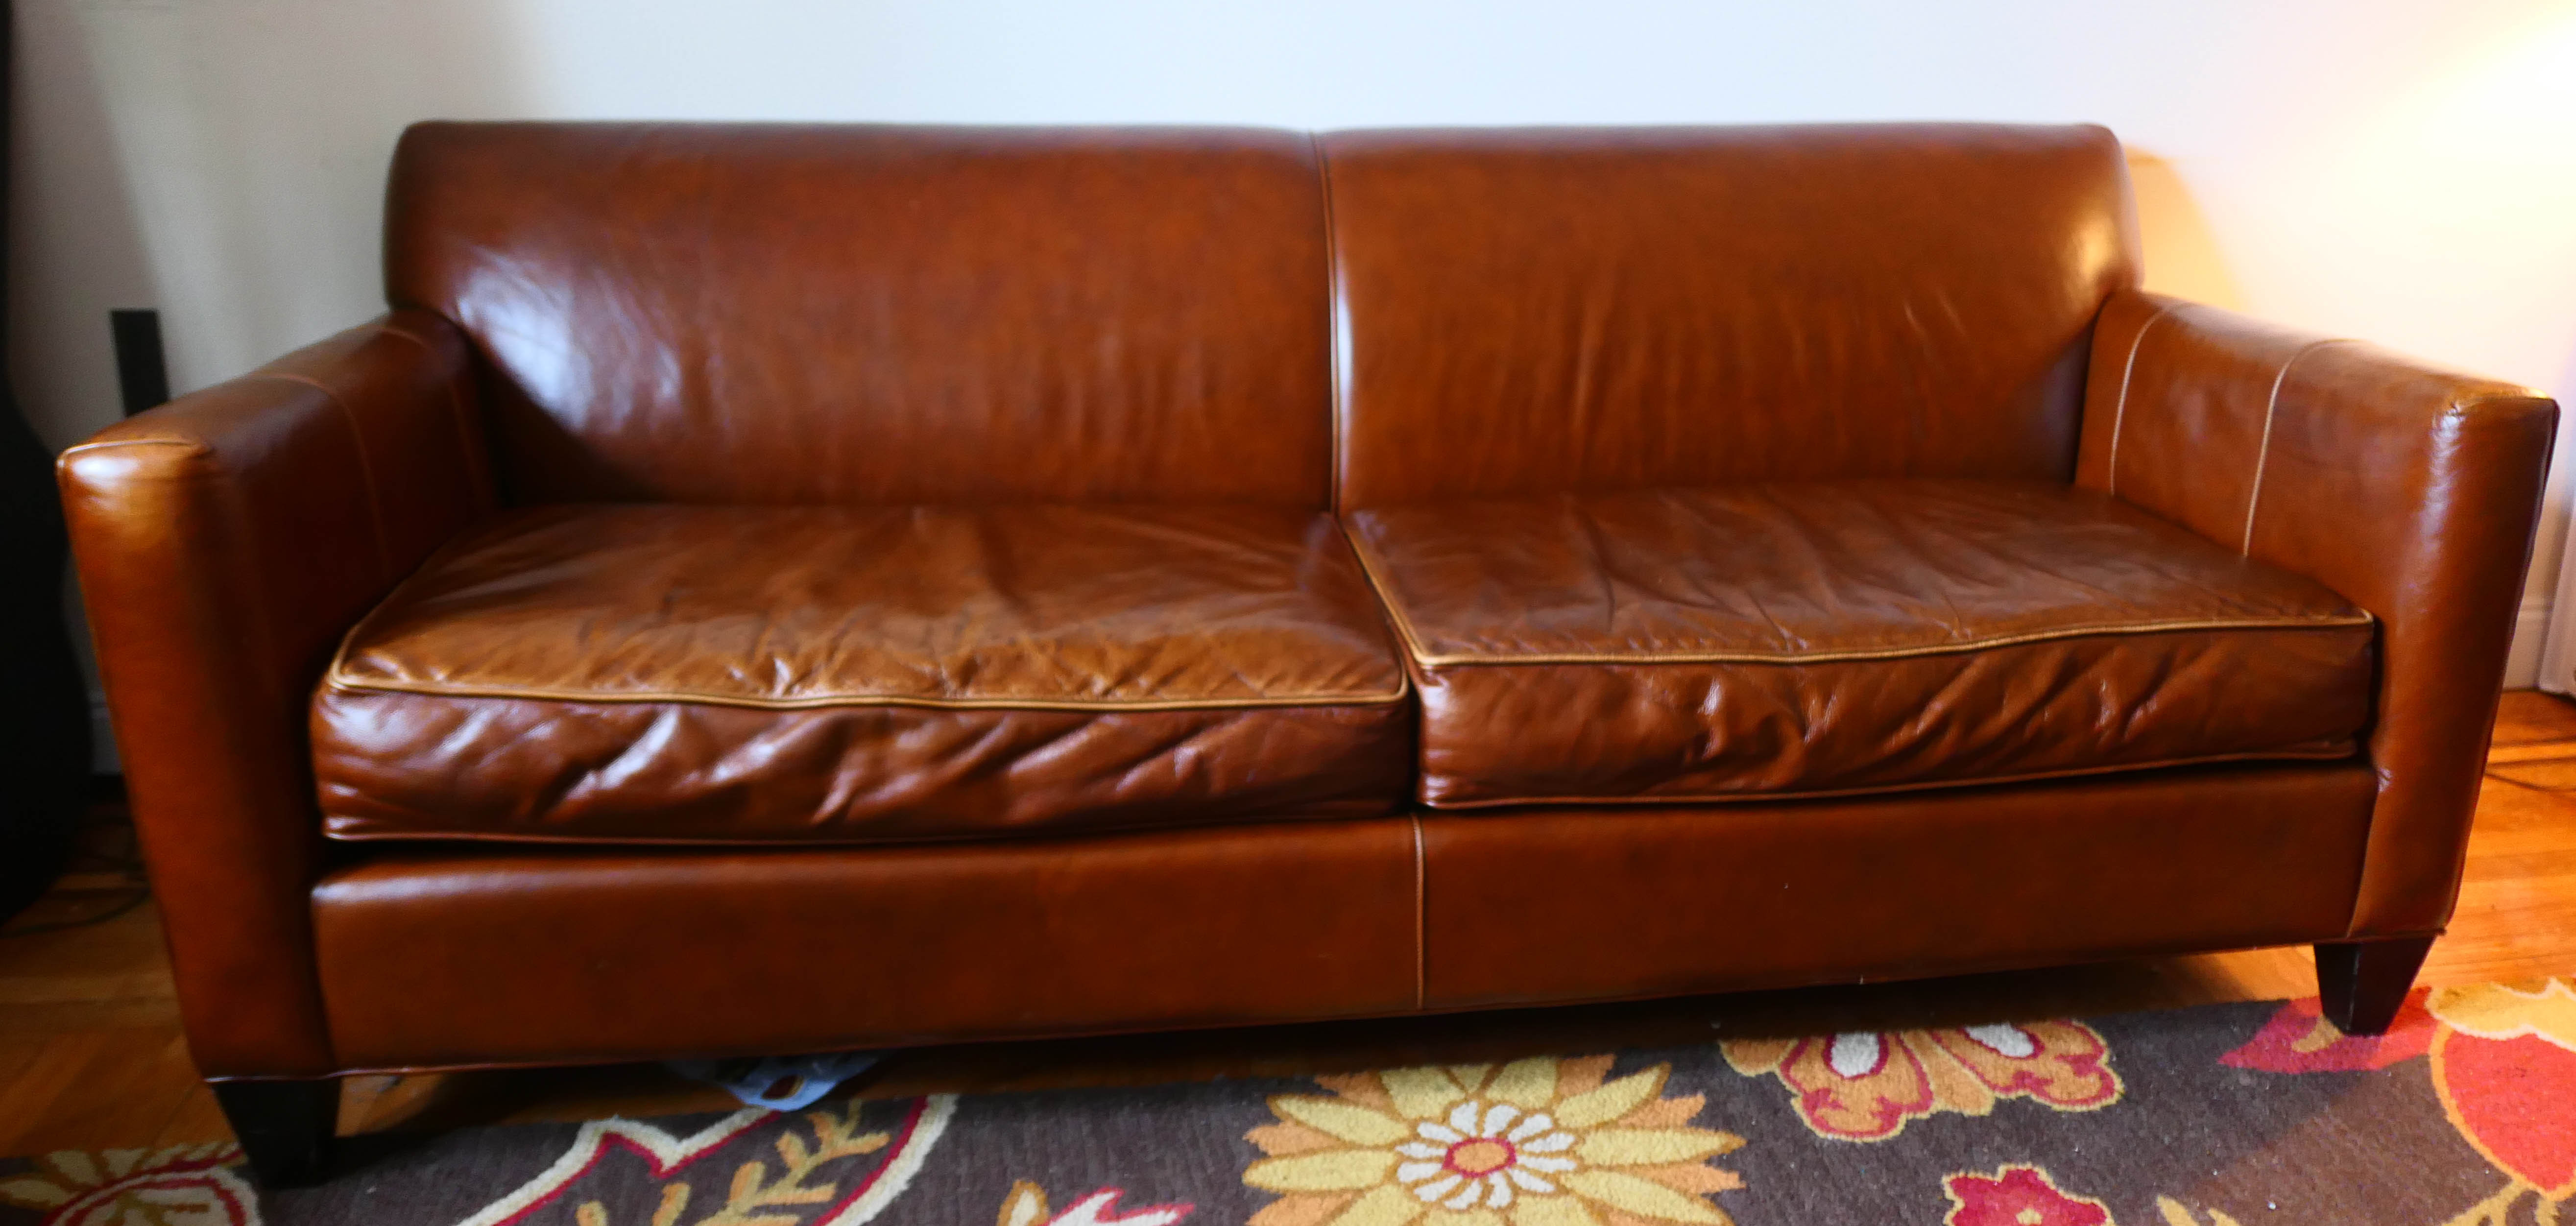 Miraculous Crate Barrel Leather Sofa Aptdeco Gmtry Best Dining Table And Chair Ideas Images Gmtryco